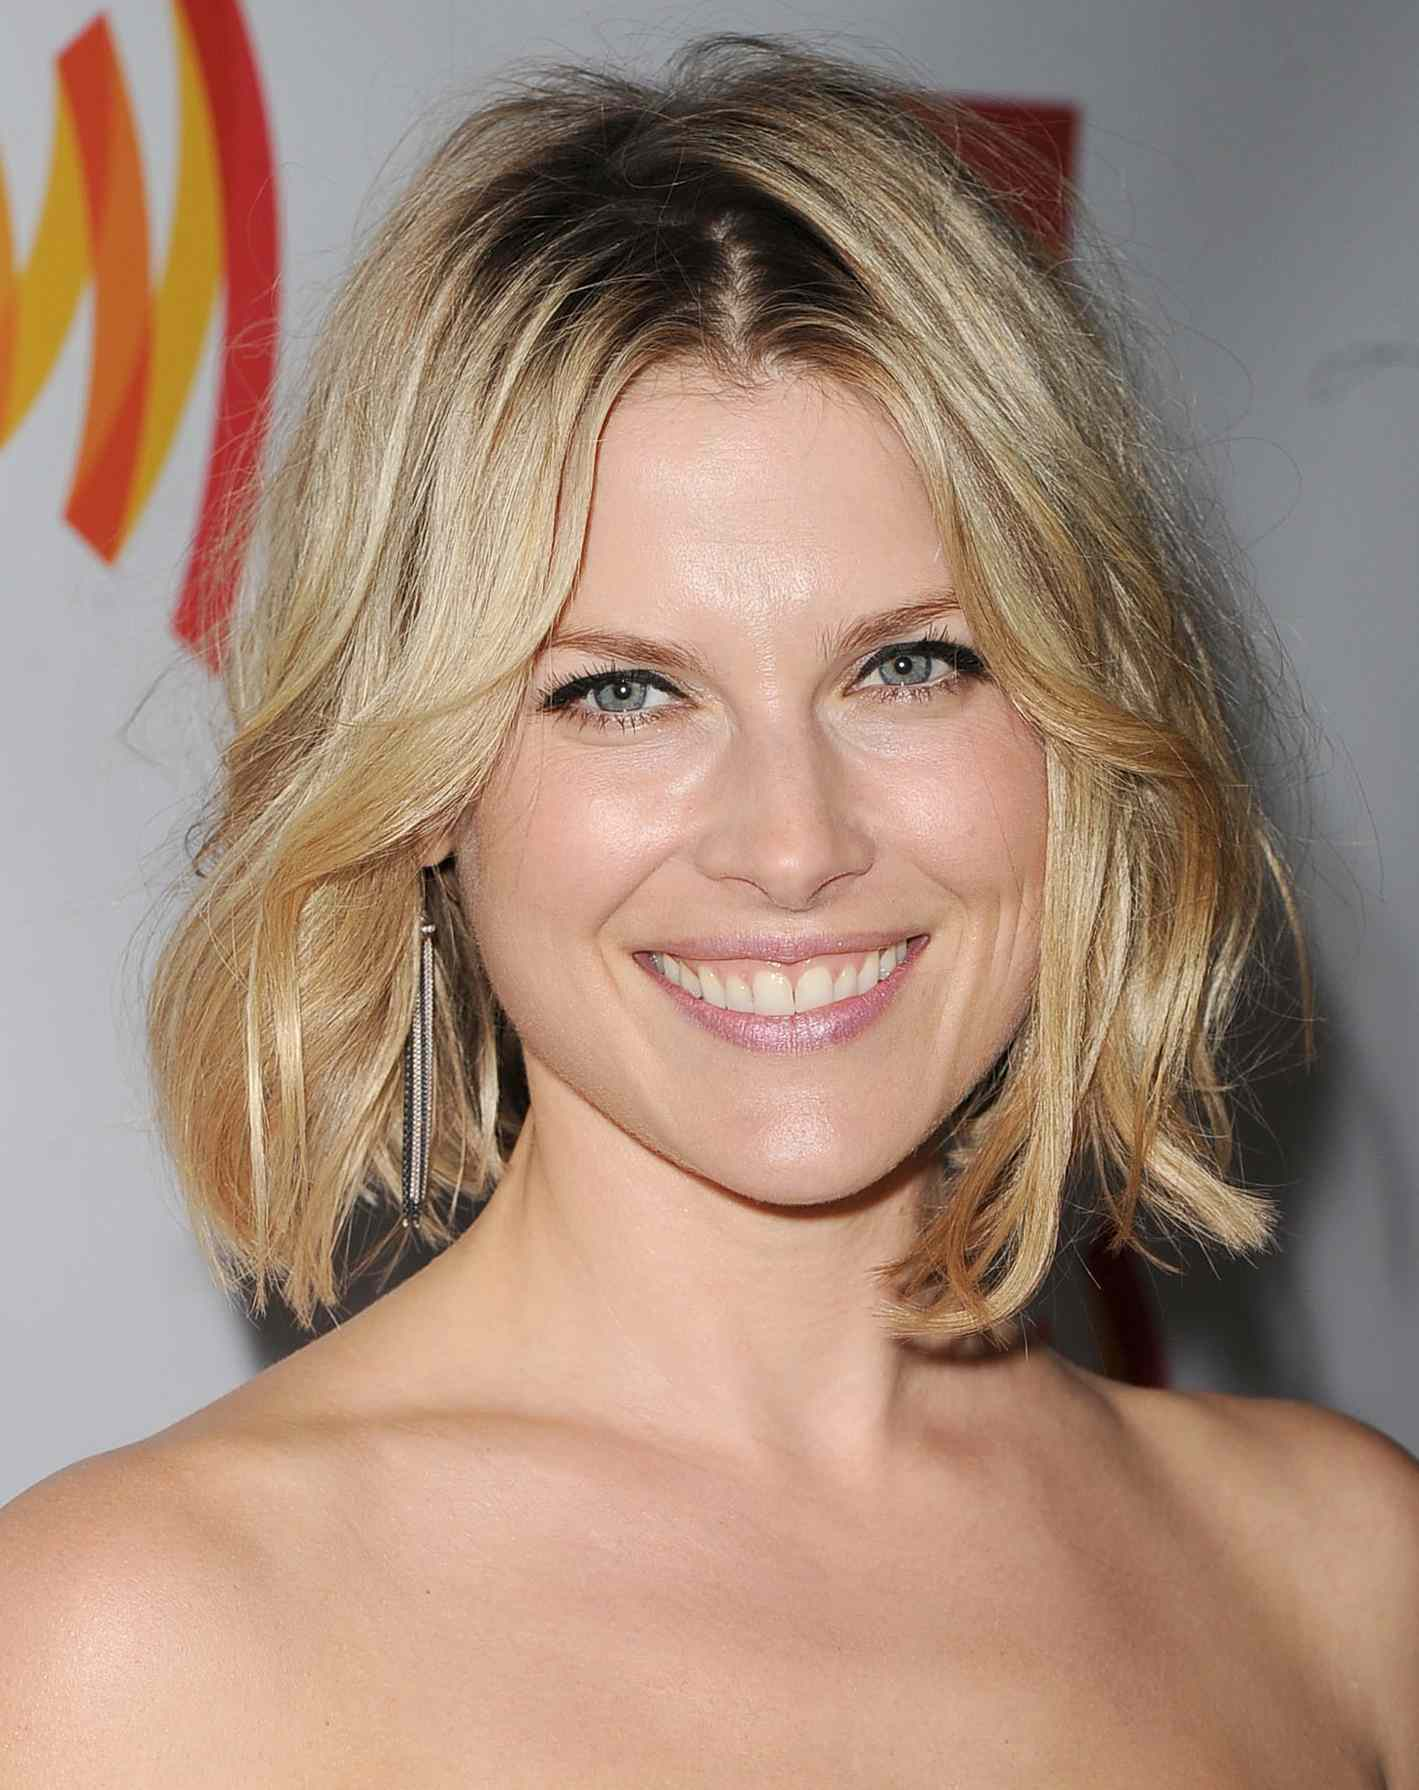 15 Flattering Hairstyles For Heart Shaped Faces